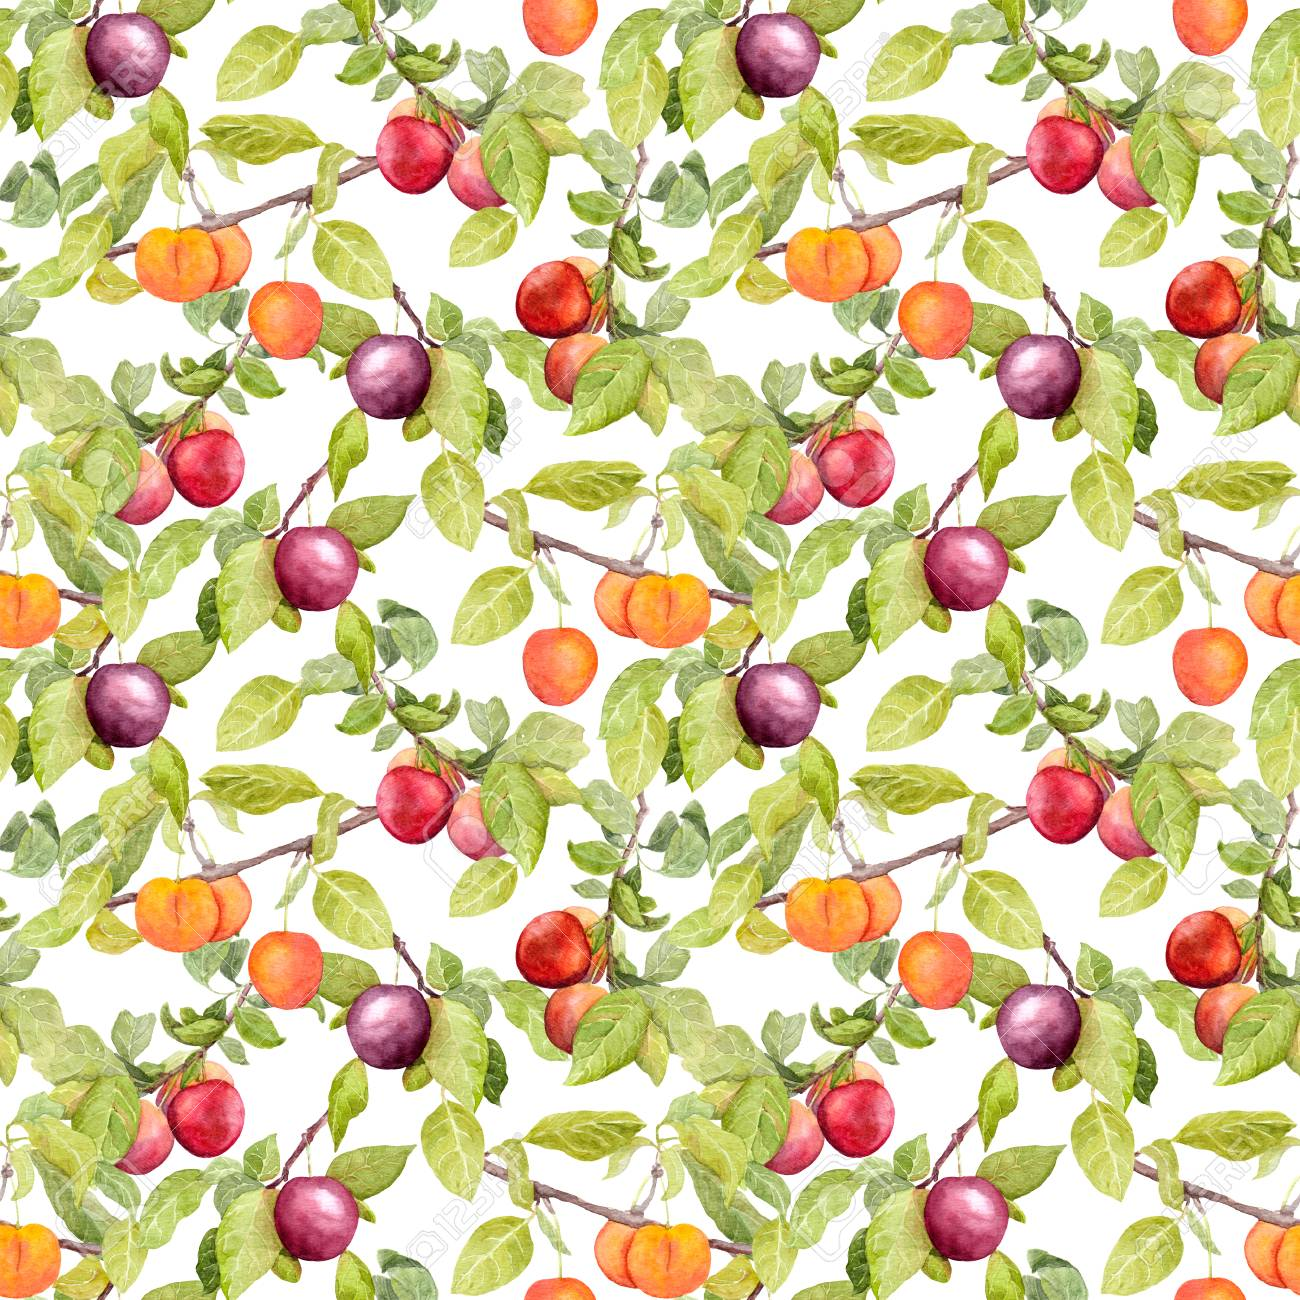 Fruits Garden With Plum Cherry Apples Seamless Wallpaper Stock Photo Picture And Royalty Free Image Image 64493923